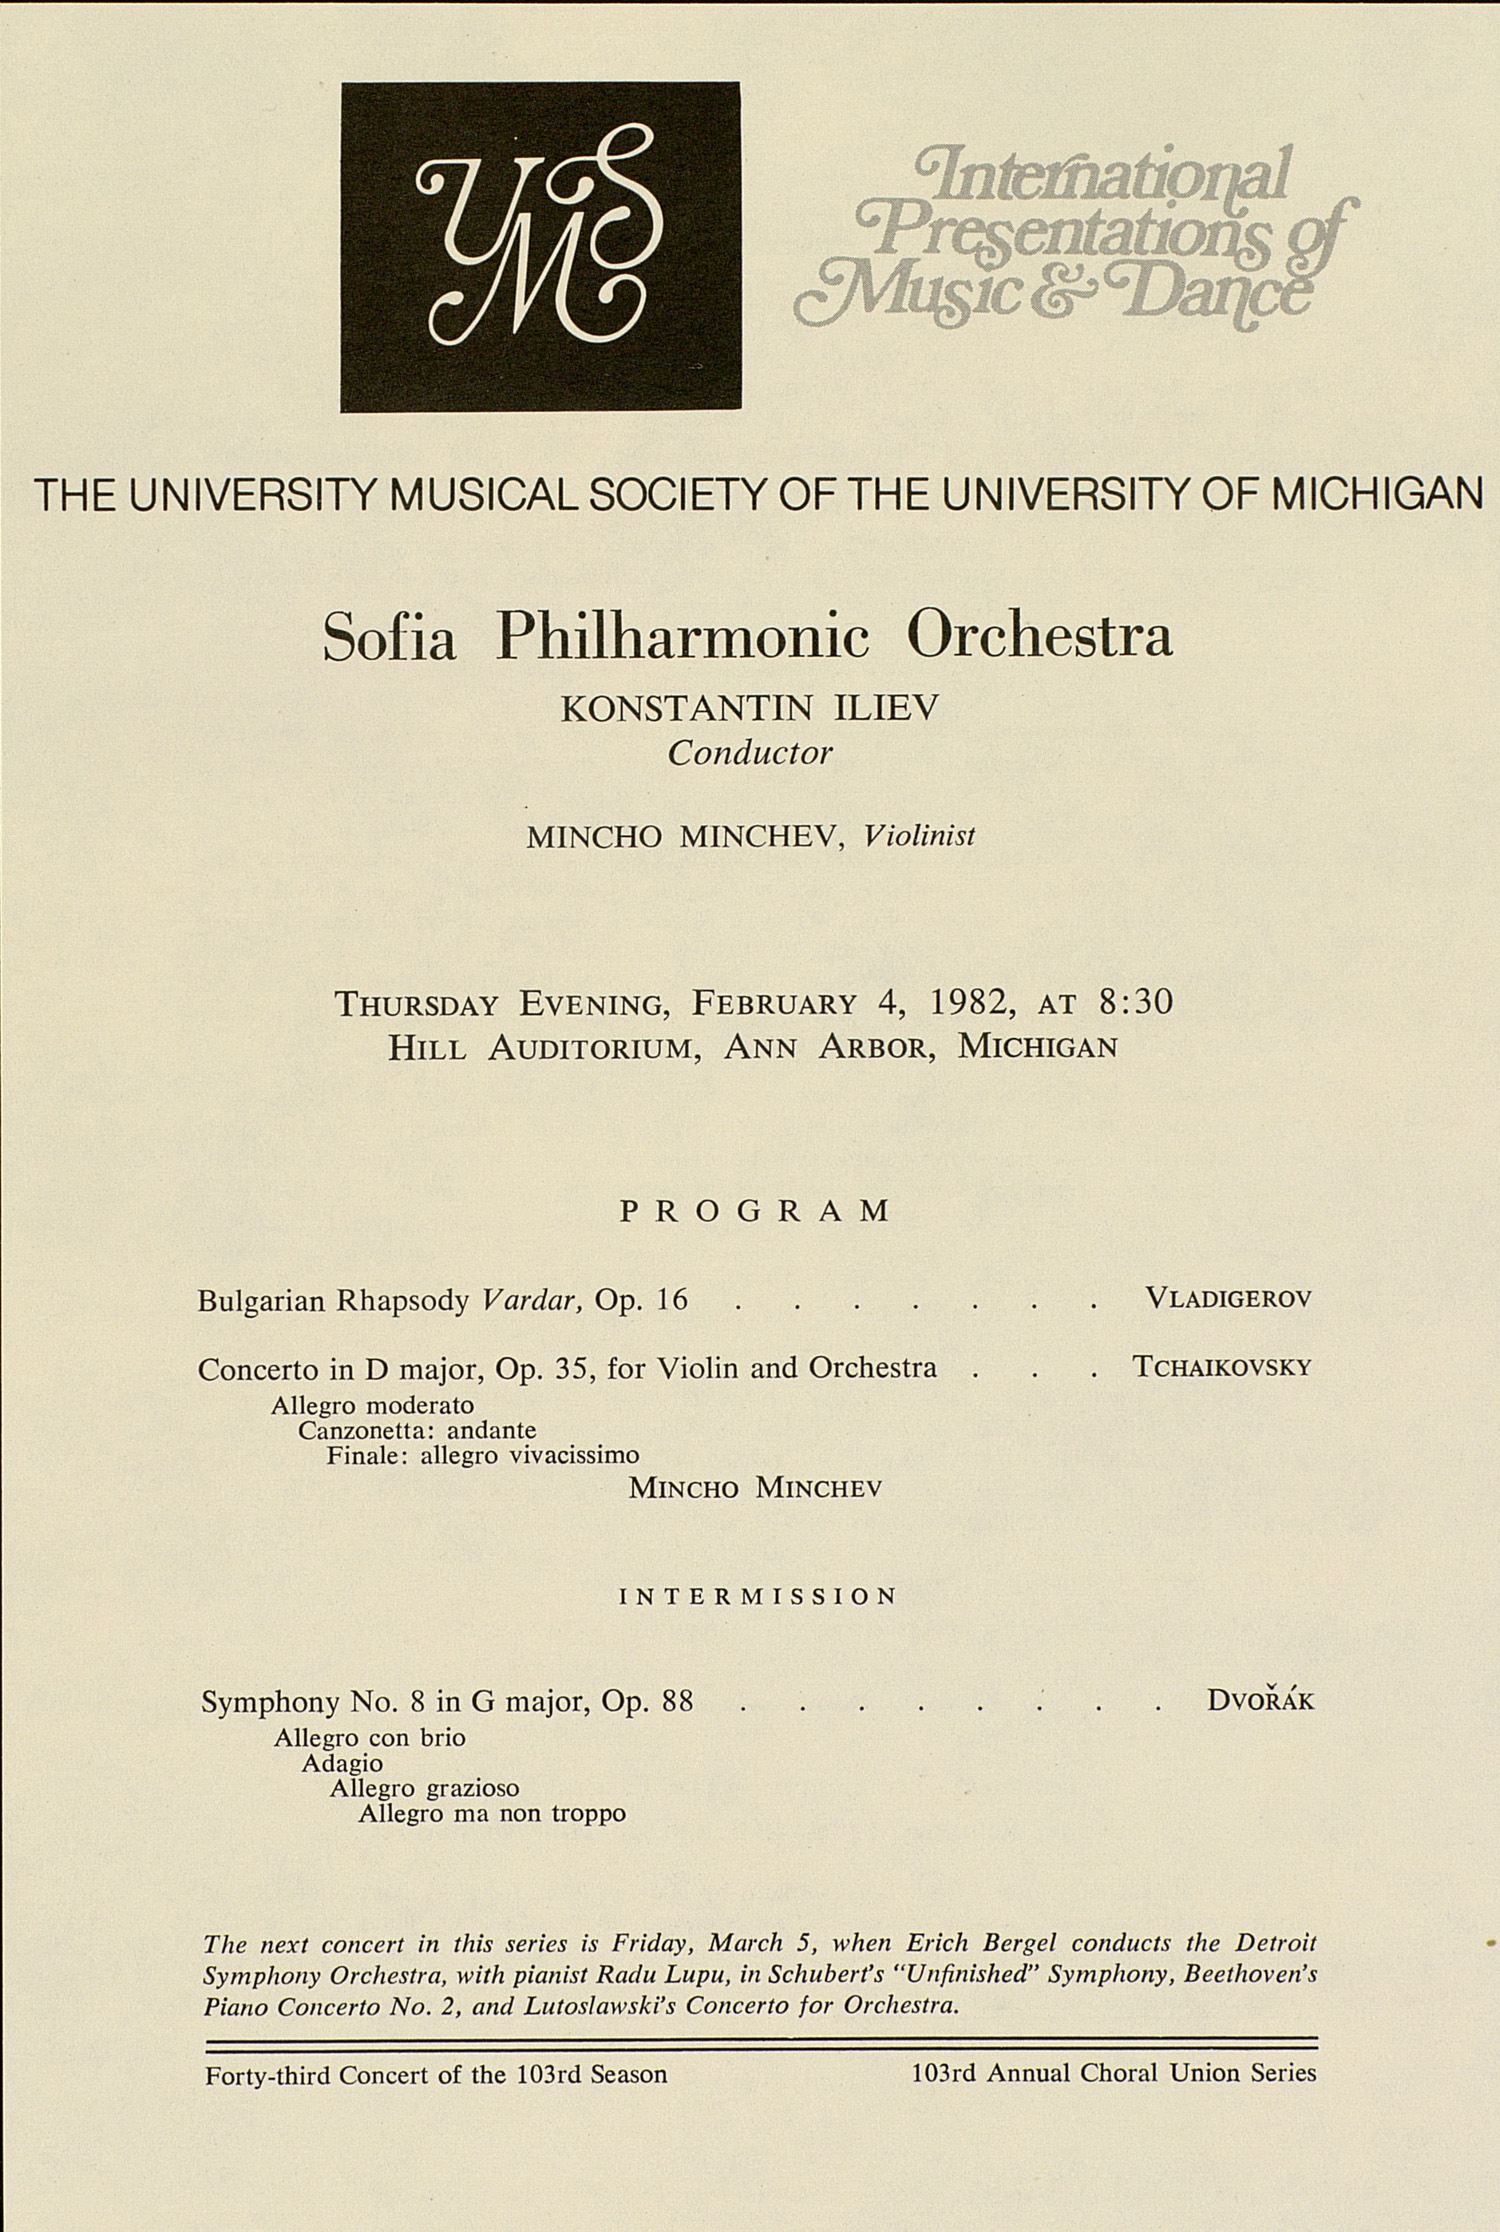 UMS Concert Program, February 4, 1982: International Presentations Of Music & Dance -- Sofia Philharmonic Orchestra image